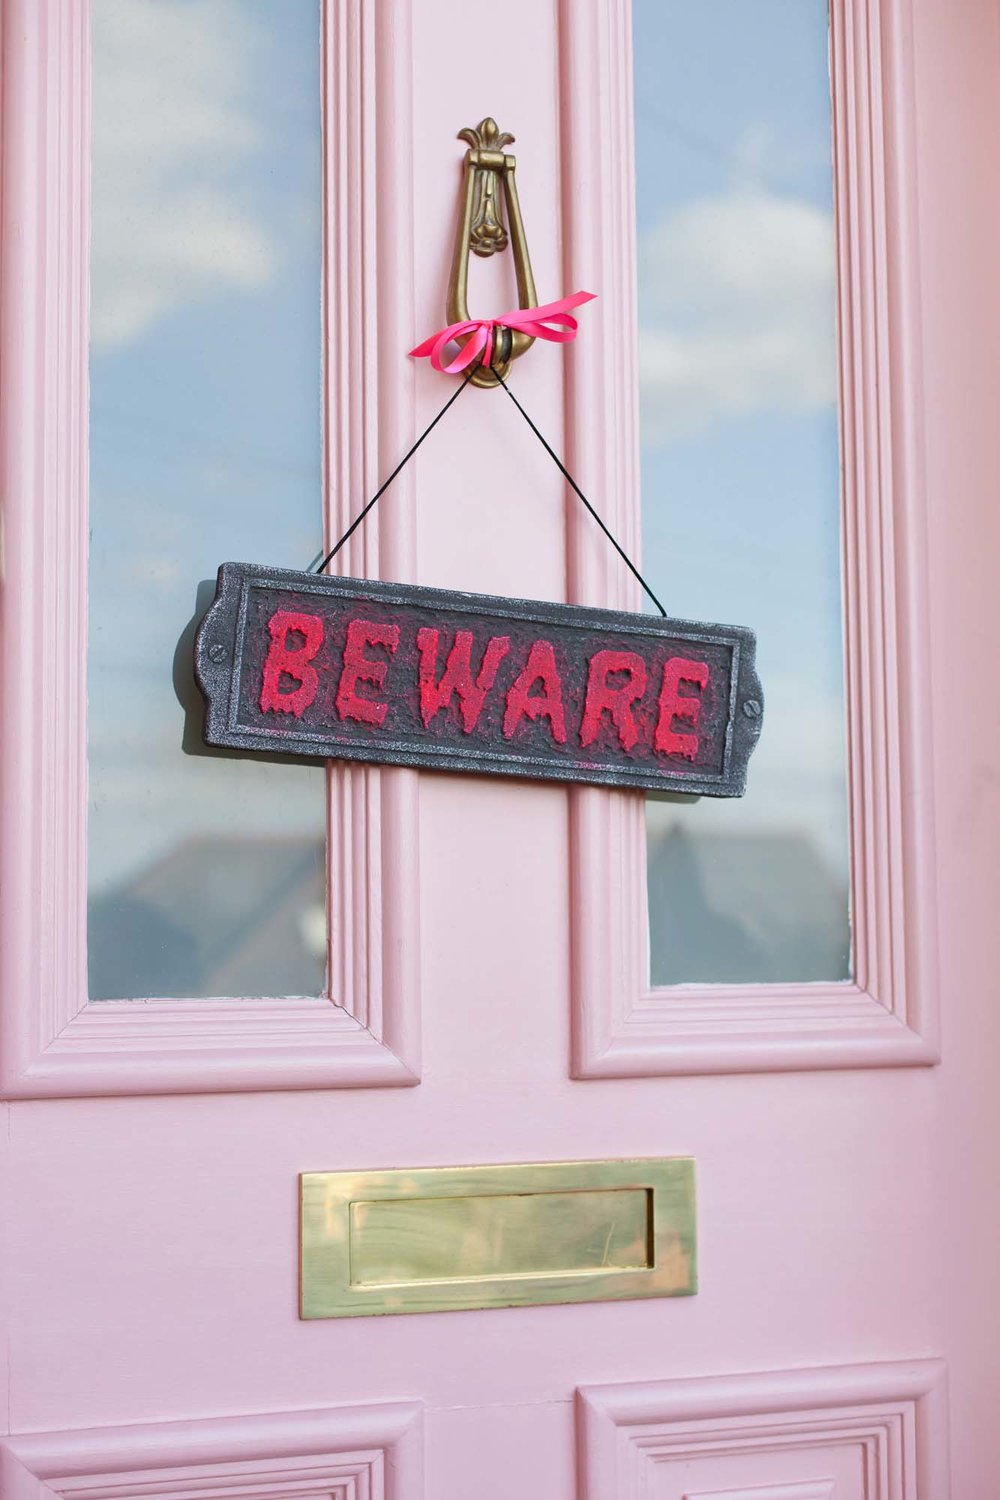 Farrow & Ball Nancy's Blushed pink front door with Beware sign